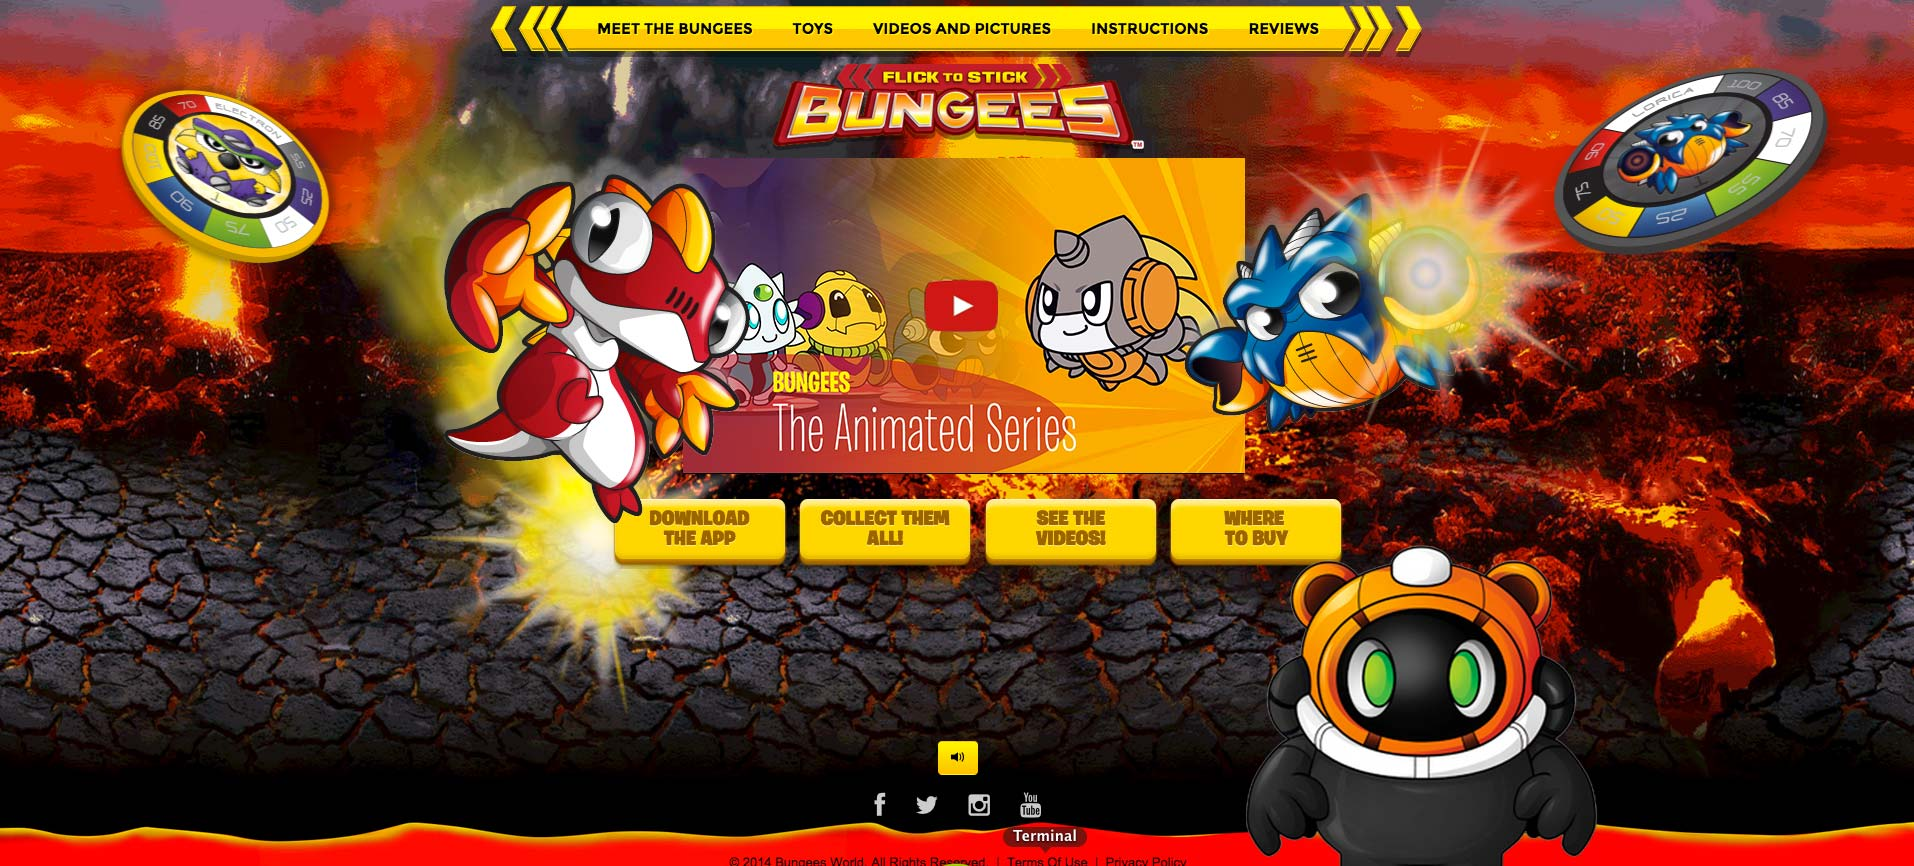 Bungees Home page